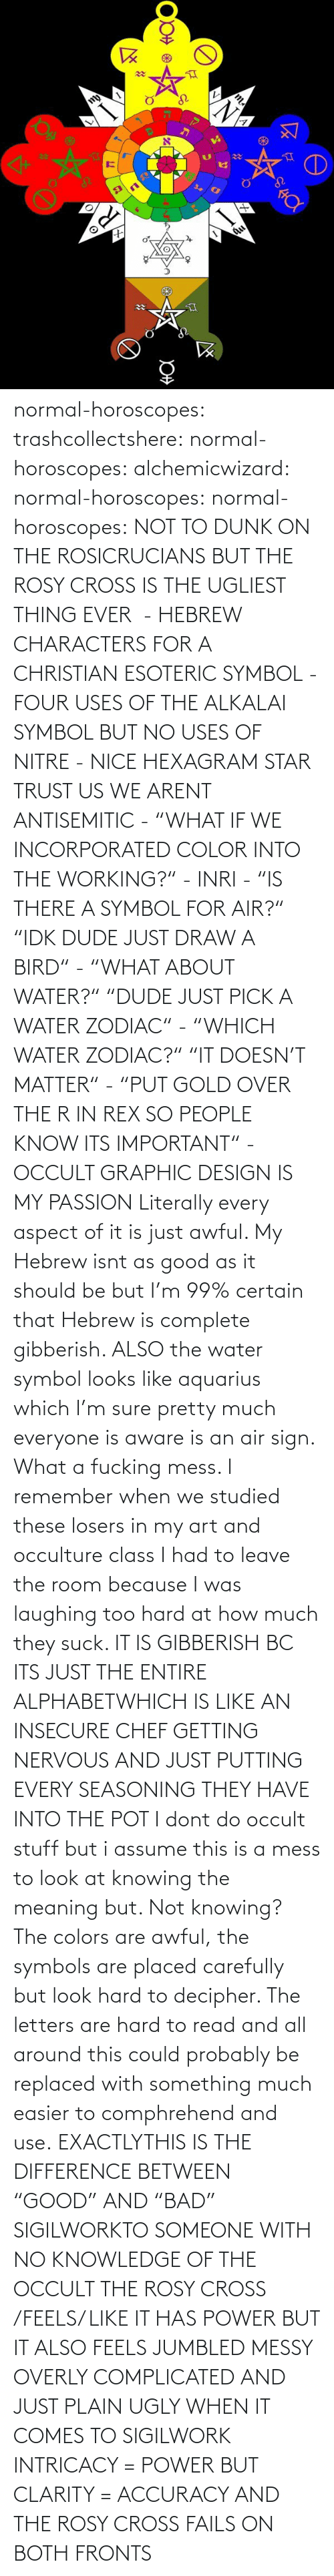 "To Look: normal-horoscopes:  trashcollectshere: normal-horoscopes:   alchemicwizard:  normal-horoscopes:  normal-horoscopes: NOT TO DUNK ON THE ROSICRUCIANS BUT THE ROSY CROSS IS THE UGLIEST THING EVER  - HEBREW CHARACTERS FOR A CHRISTIAN ESOTERIC SYMBOL - FOUR USES OF THE ALKALAI SYMBOL BUT NO USES OF NITRE - NICE HEXAGRAM STAR TRUST US WE ARENT ANTISEMITIC - ""WHAT IF WE INCORPORATED COLOR INTO THE WORKING?"" - INRI - ""IS THERE A SYMBOL FOR AIR?"" ""IDK DUDE JUST DRAW A BIRD"" - ""WHAT ABOUT WATER?"" ""DUDE JUST PICK A WATER ZODIAC"" - ""WHICH WATER ZODIAC?"" ""IT DOESN'T MATTER"" - ""PUT GOLD OVER THE R IN REX SO PEOPLE KNOW ITS IMPORTANT"" - OCCULT GRAPHIC DESIGN IS MY PASSION  Literally every aspect of it is just awful. My Hebrew isnt as good as it should be but I'm 99% certain that Hebrew is complete gibberish.  ALSO the water symbol looks like aquarius which I'm sure pretty much everyone is aware is an air sign. What a fucking mess.  I remember when we studied these losers in my art and occulture class I had to leave the room because I was laughing too hard at how much they suck.   IT IS GIBBERISH BC ITS JUST THE ENTIRE ALPHABETWHICH IS LIKE AN INSECURE CHEF GETTING NERVOUS AND JUST PUTTING EVERY SEASONING THEY HAVE INTO THE POT     I dont do occult stuff but i assume this is a mess to look at knowing the meaning but. Not knowing? The colors are awful, the symbols are placed carefully but look hard to decipher. The letters are hard to read and all around this could probably be replaced with something much easier to comphrehend and use.  EXACTLYTHIS IS THE DIFFERENCE BETWEEN ""GOOD"" AND ""BAD"" SIGILWORKTO SOMEONE WITH NO KNOWLEDGE OF THE OCCULT THE ROSY CROSS /FEELS/ LIKE IT HAS POWER BUT IT ALSO FEELS JUMBLED MESSY OVERLY COMPLICATED AND JUST PLAIN UGLY WHEN IT COMES TO SIGILWORK INTRICACY = POWER BUT CLARITY = ACCURACY AND THE ROSY CROSS FAILS ON BOTH FRONTS"